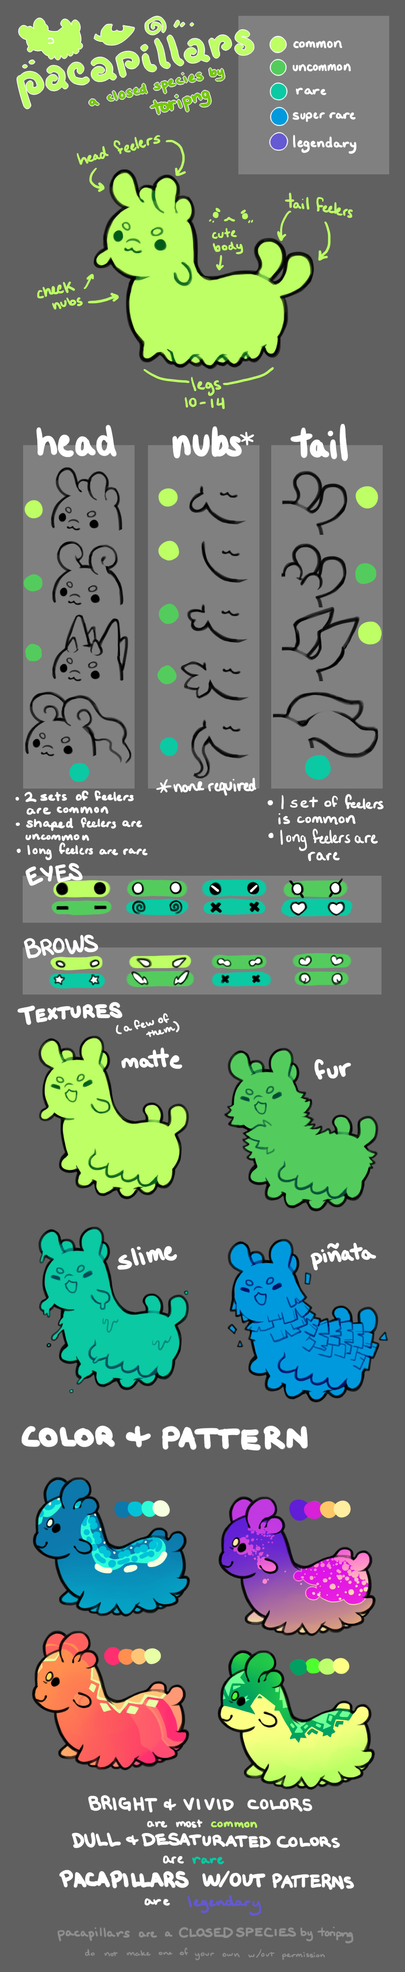 Pacapillars - Species Guide [outdated] by toripng